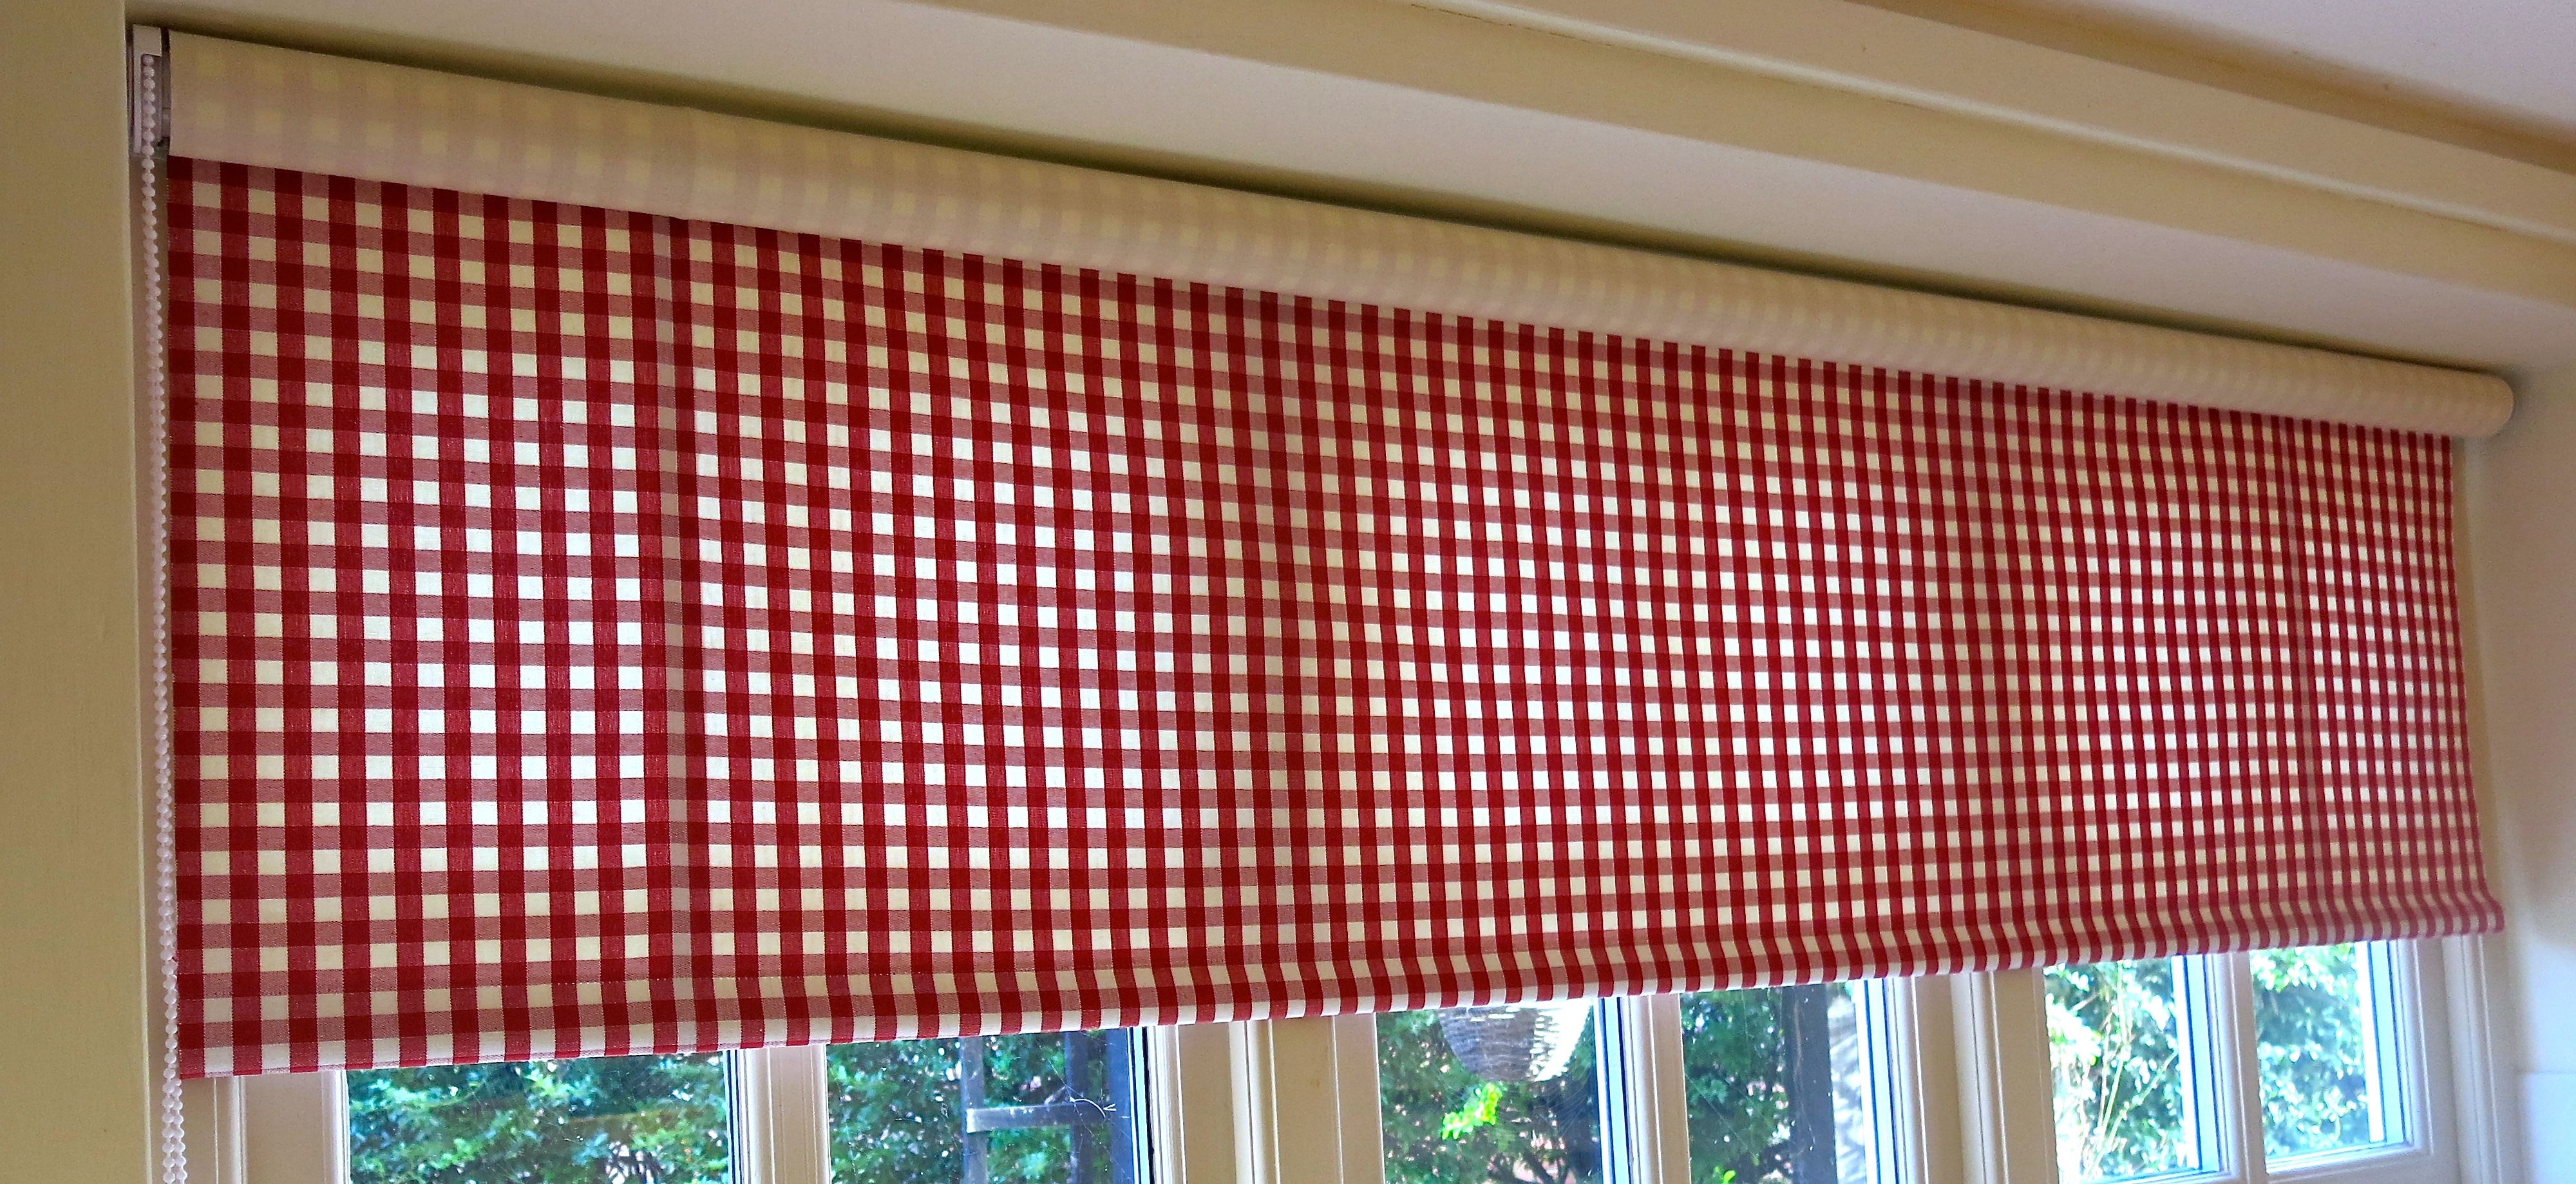 Delightful Curtain Red Roman Blinds Kitchen 6 Of 15 Photos